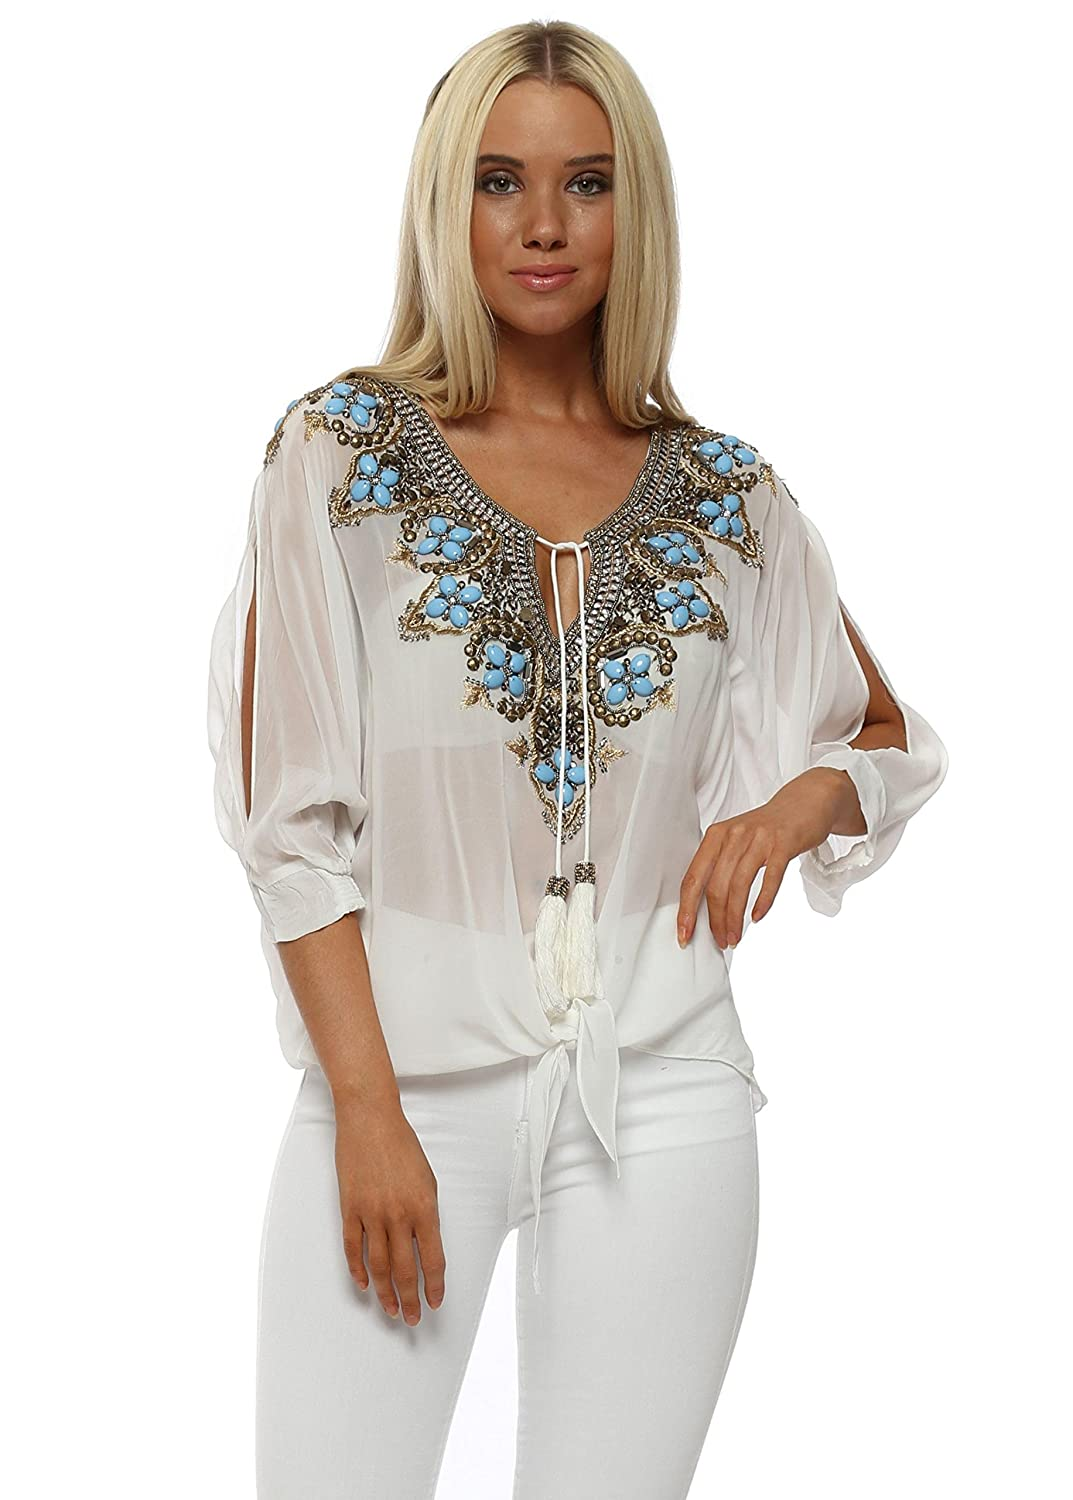 73337636d46 Laurie   Joe Biaritz White Jewelled Tie Bottom Top  Amazon.co.uk  Clothing